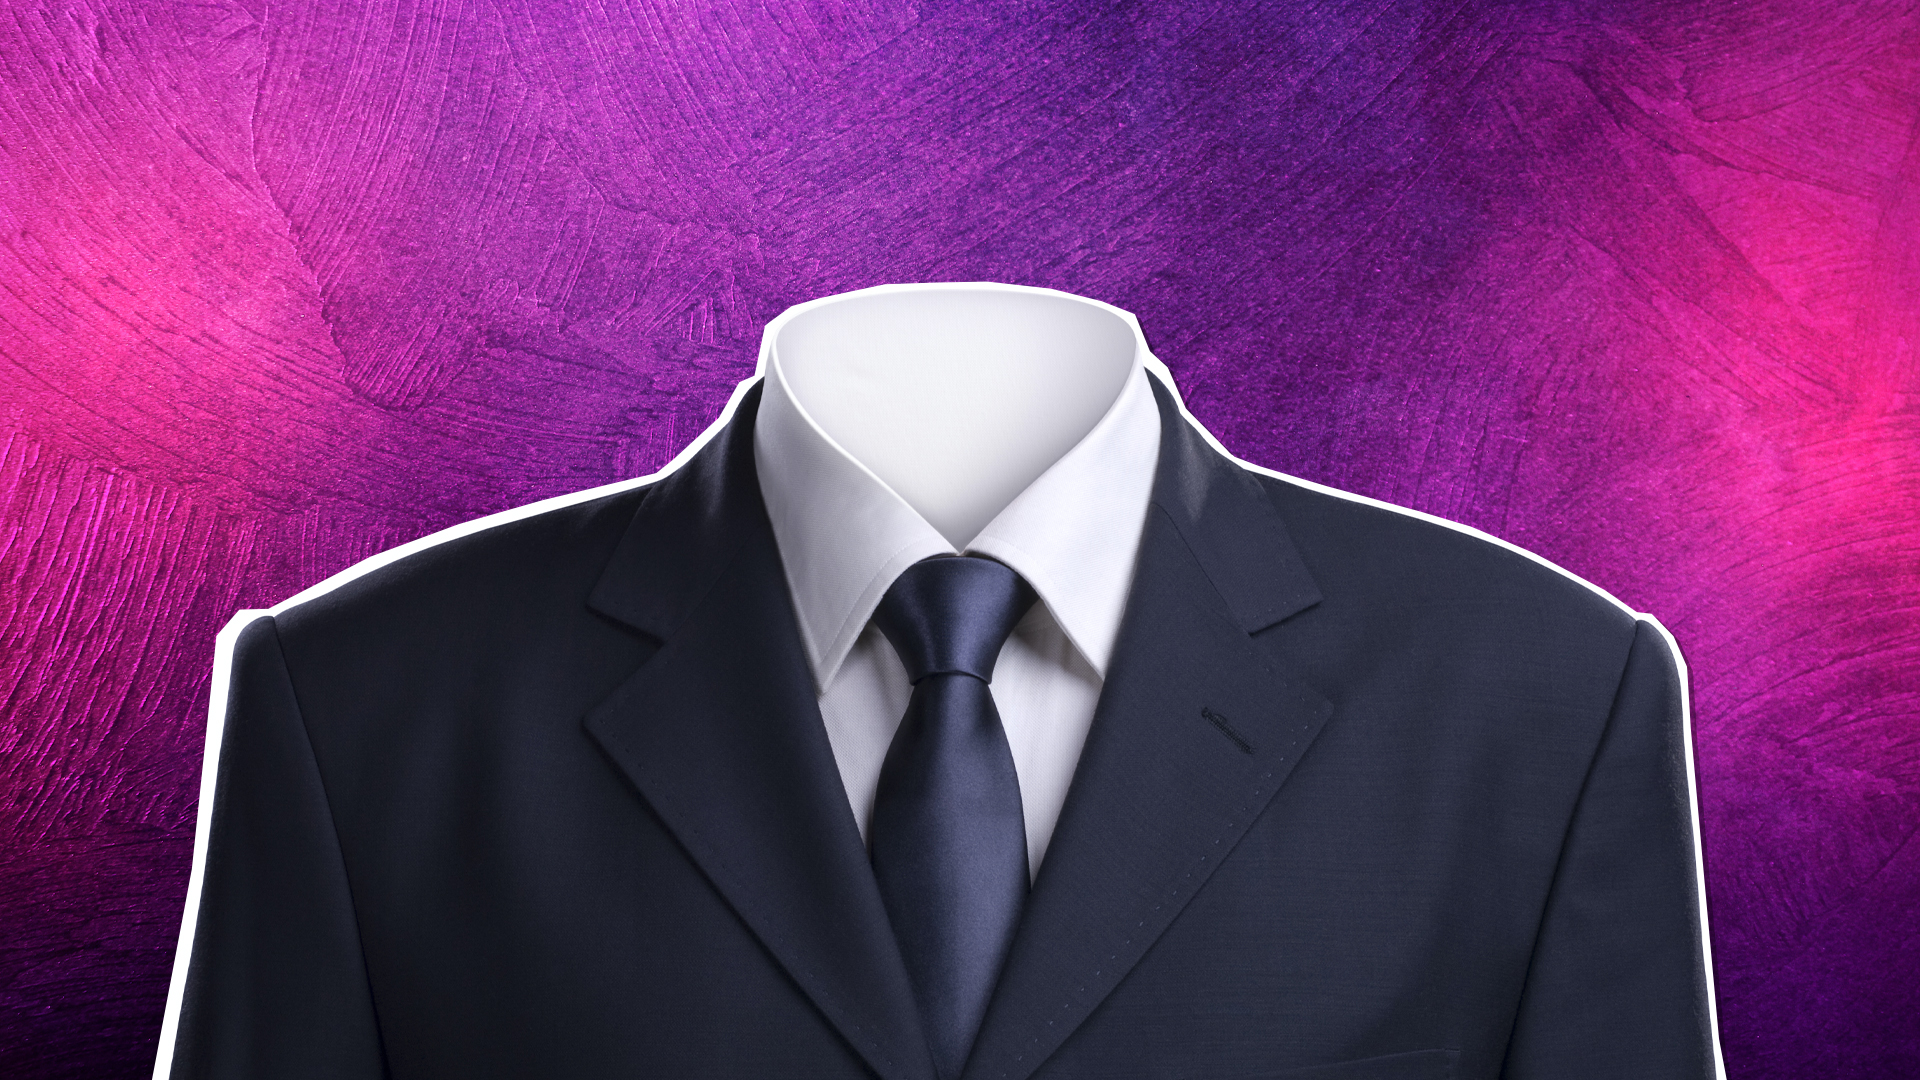 Invisible man in a suit